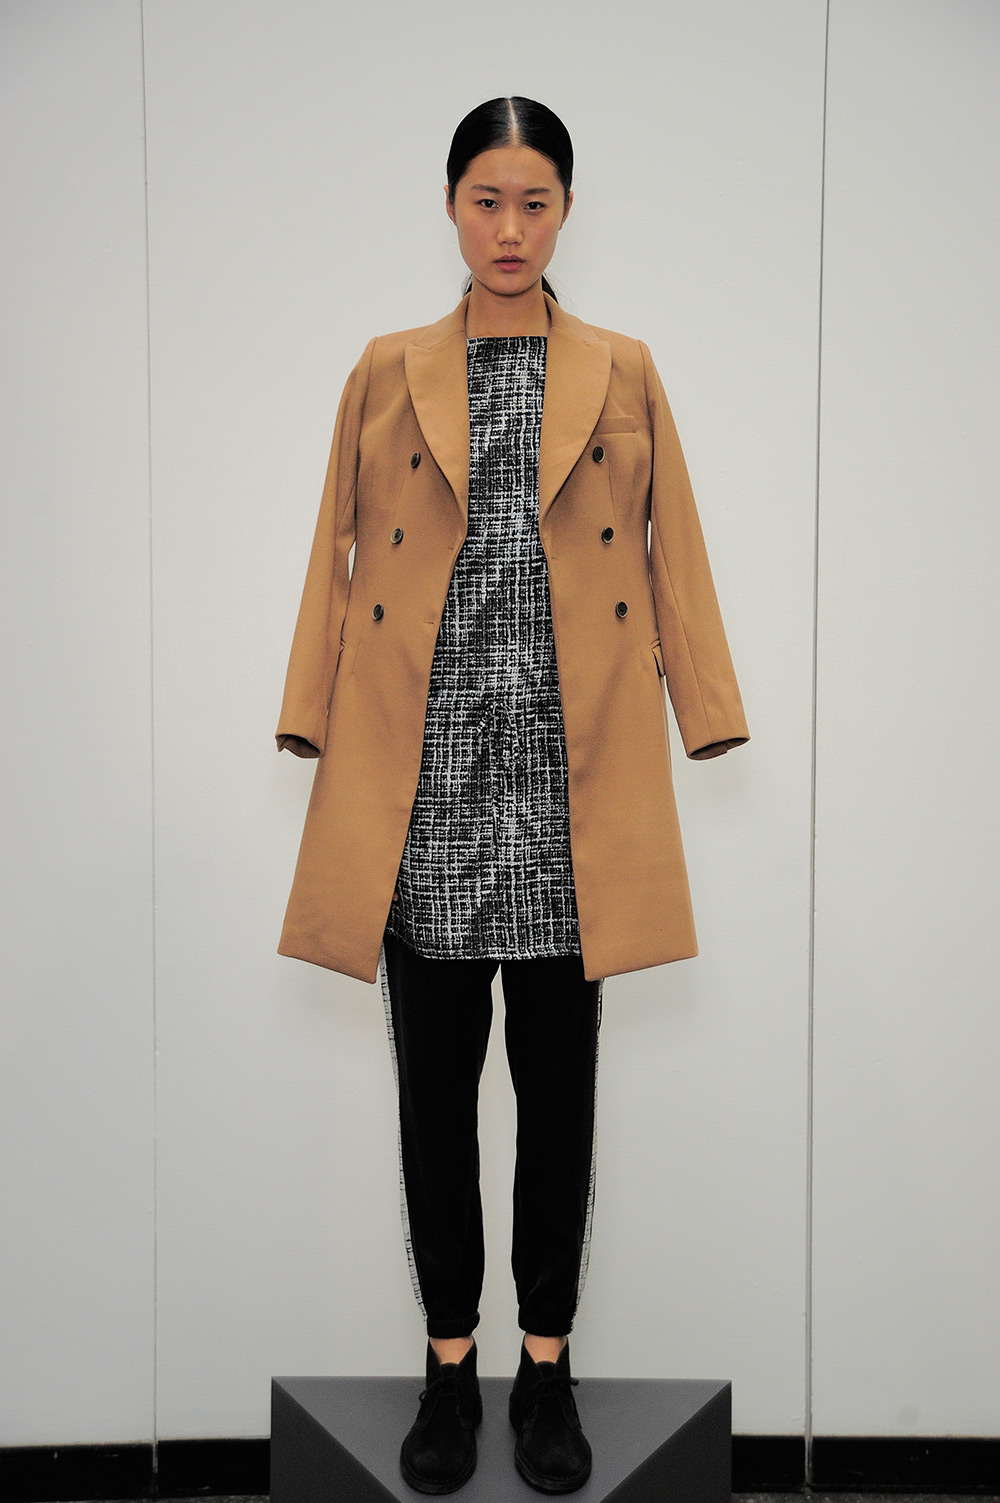 shades-of-grey-micah-cohen-fw13-15